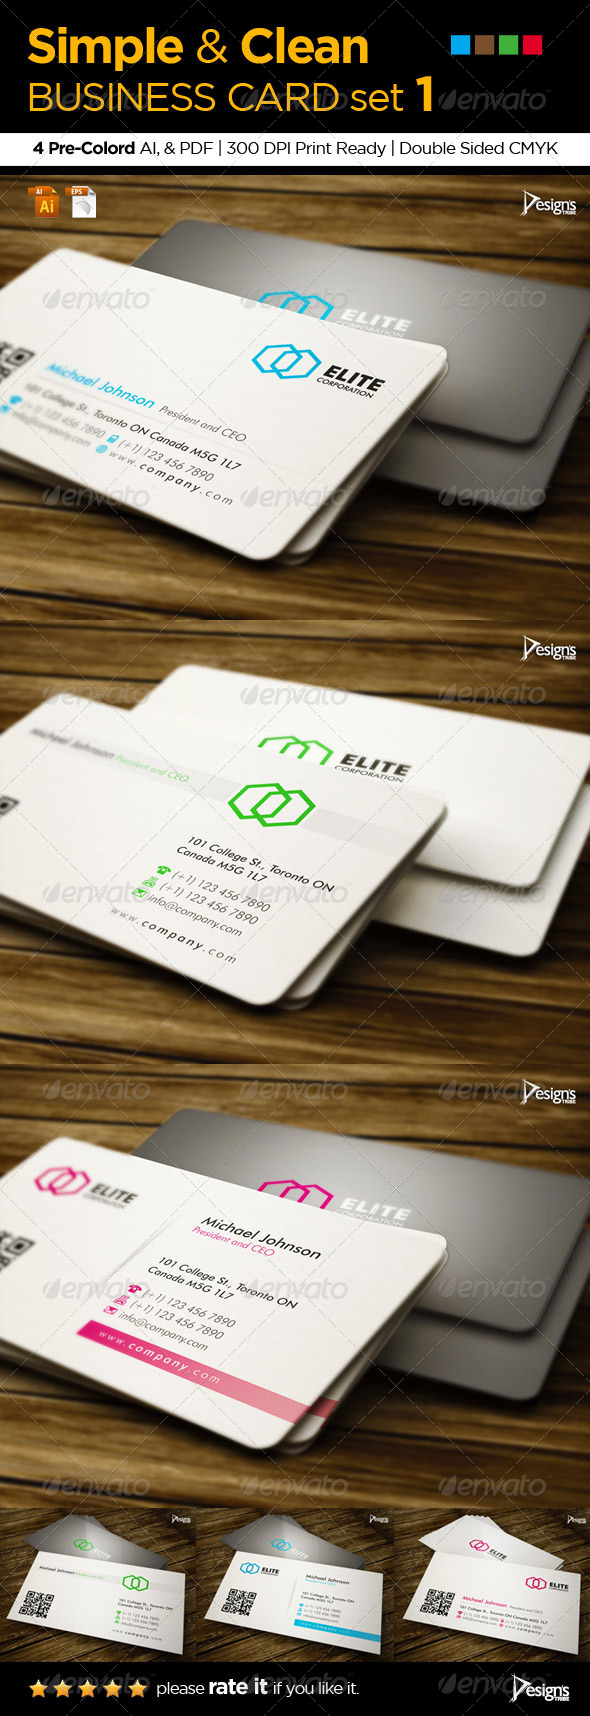 GraphicRiver 3in1 Simple and Clean Business Card set 1 5507012